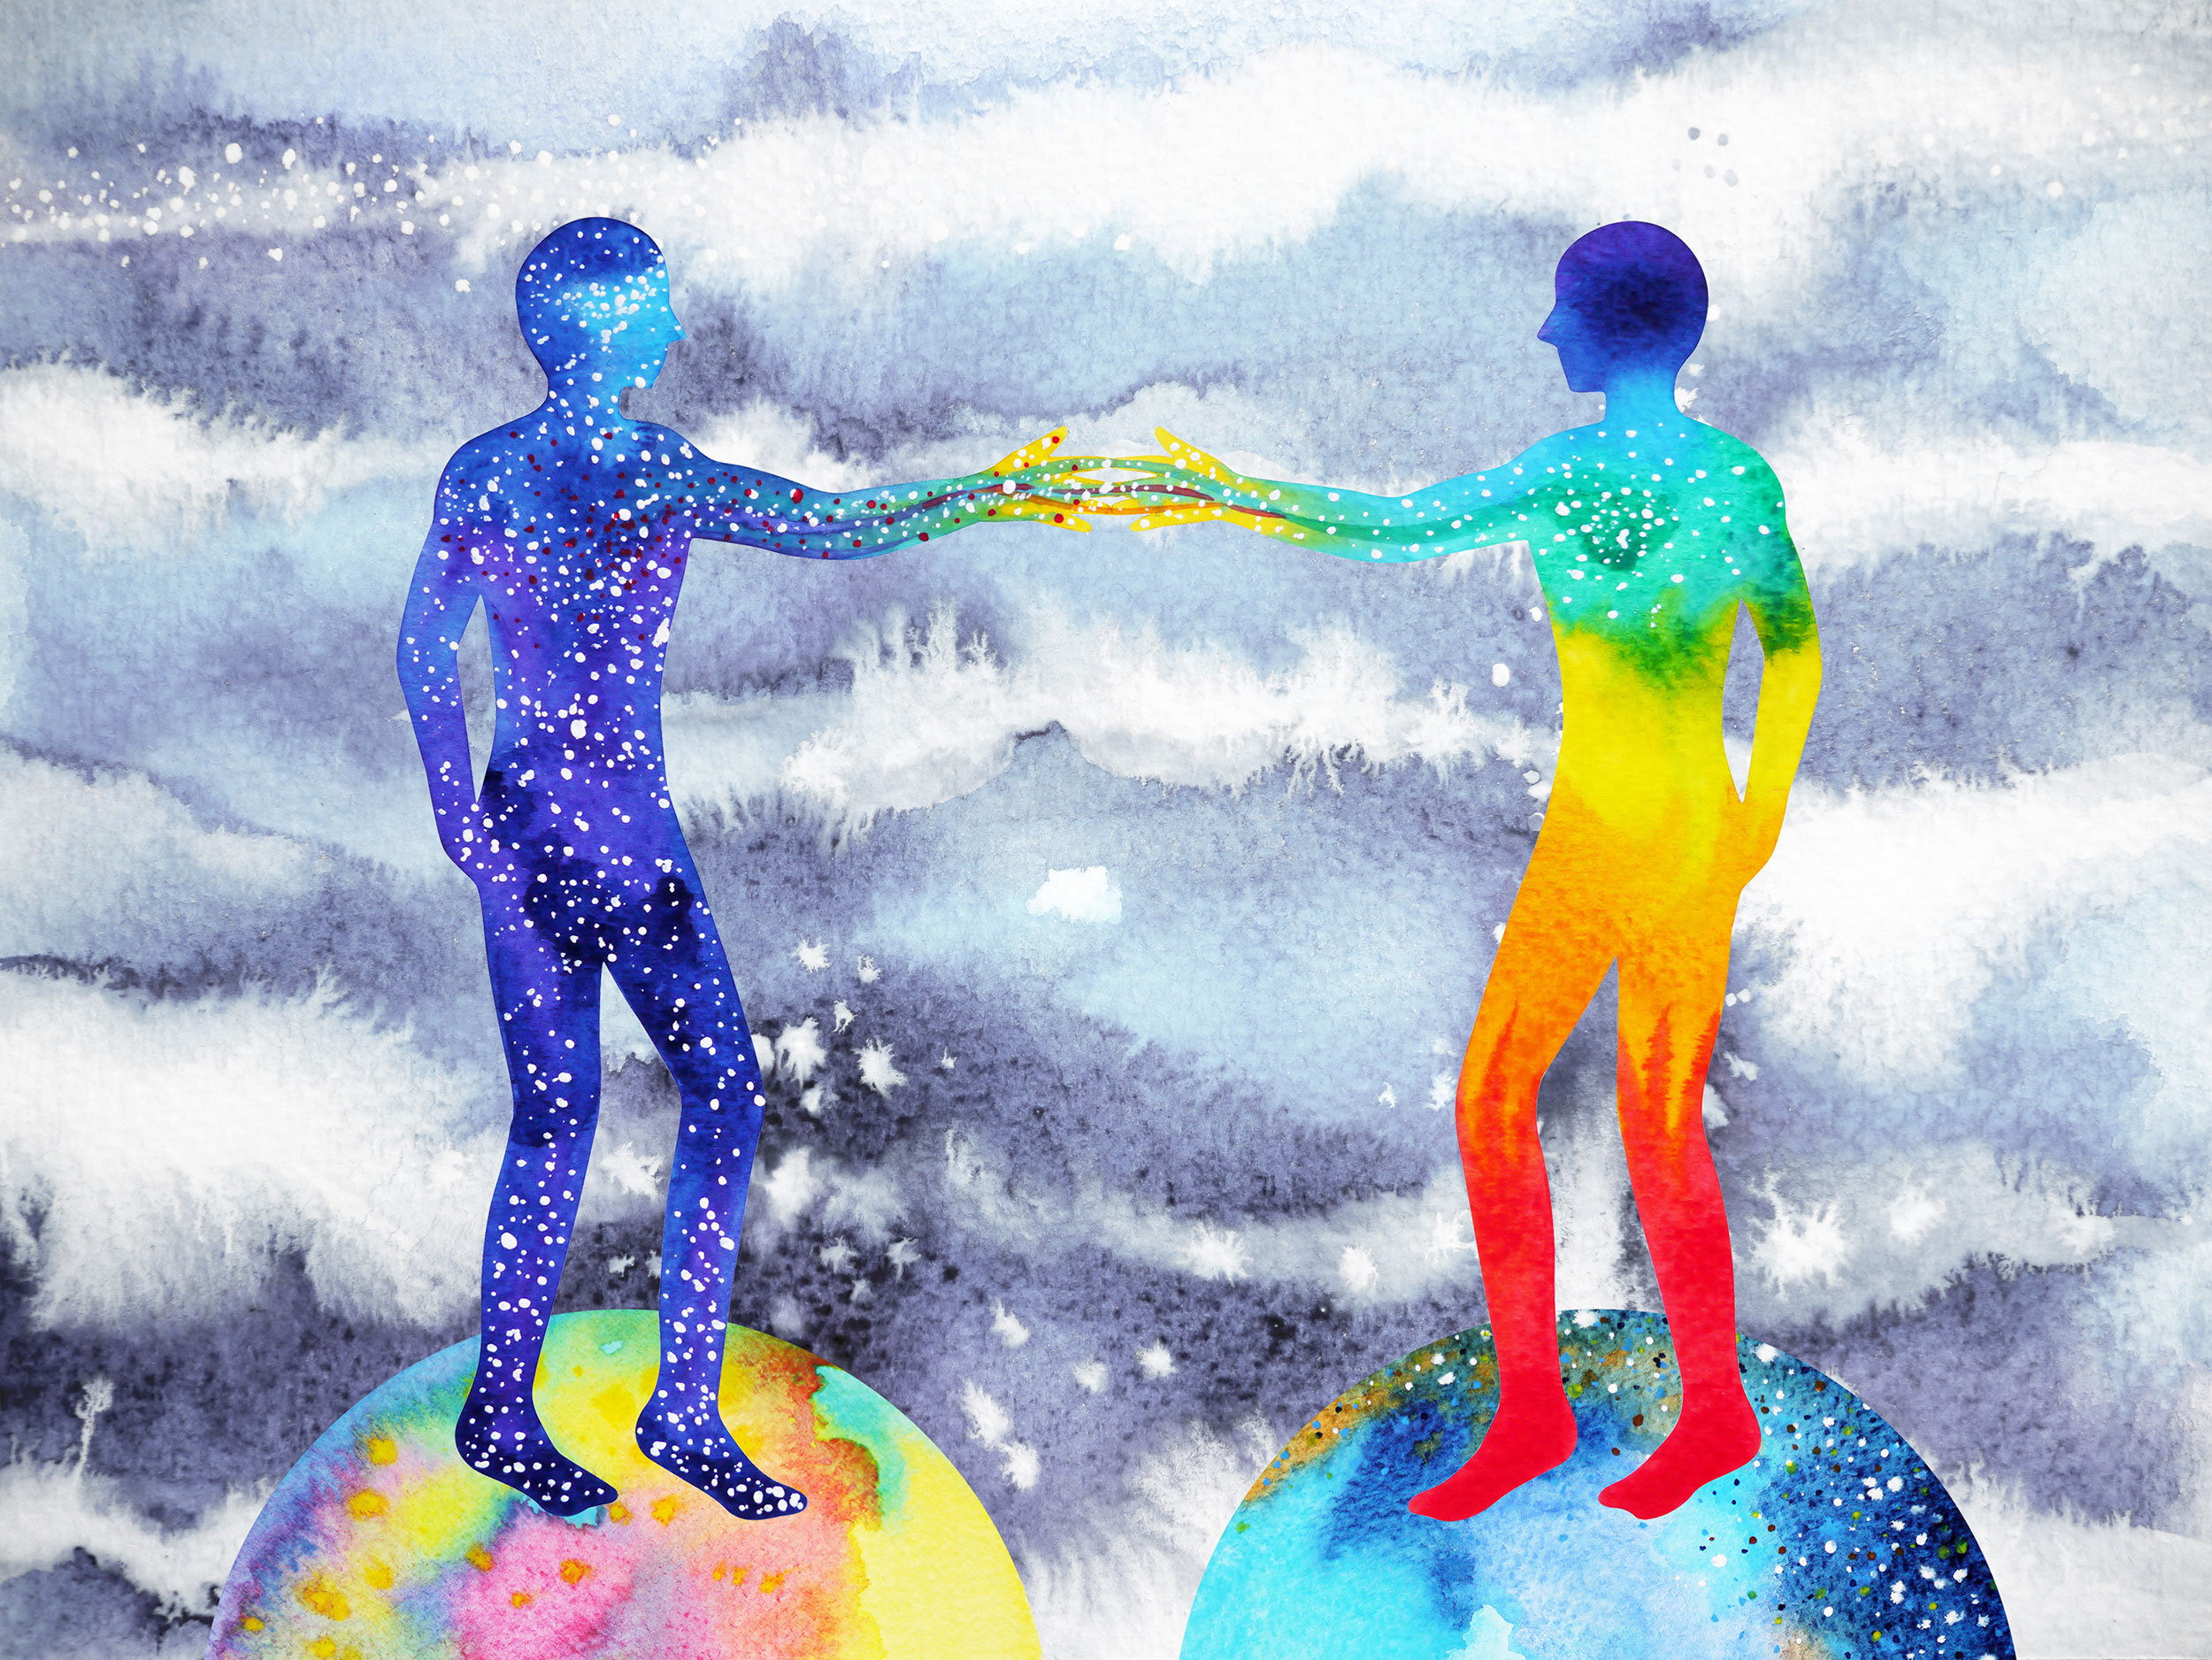 Making the Connection - In divination, as in life, the connections we make matter.